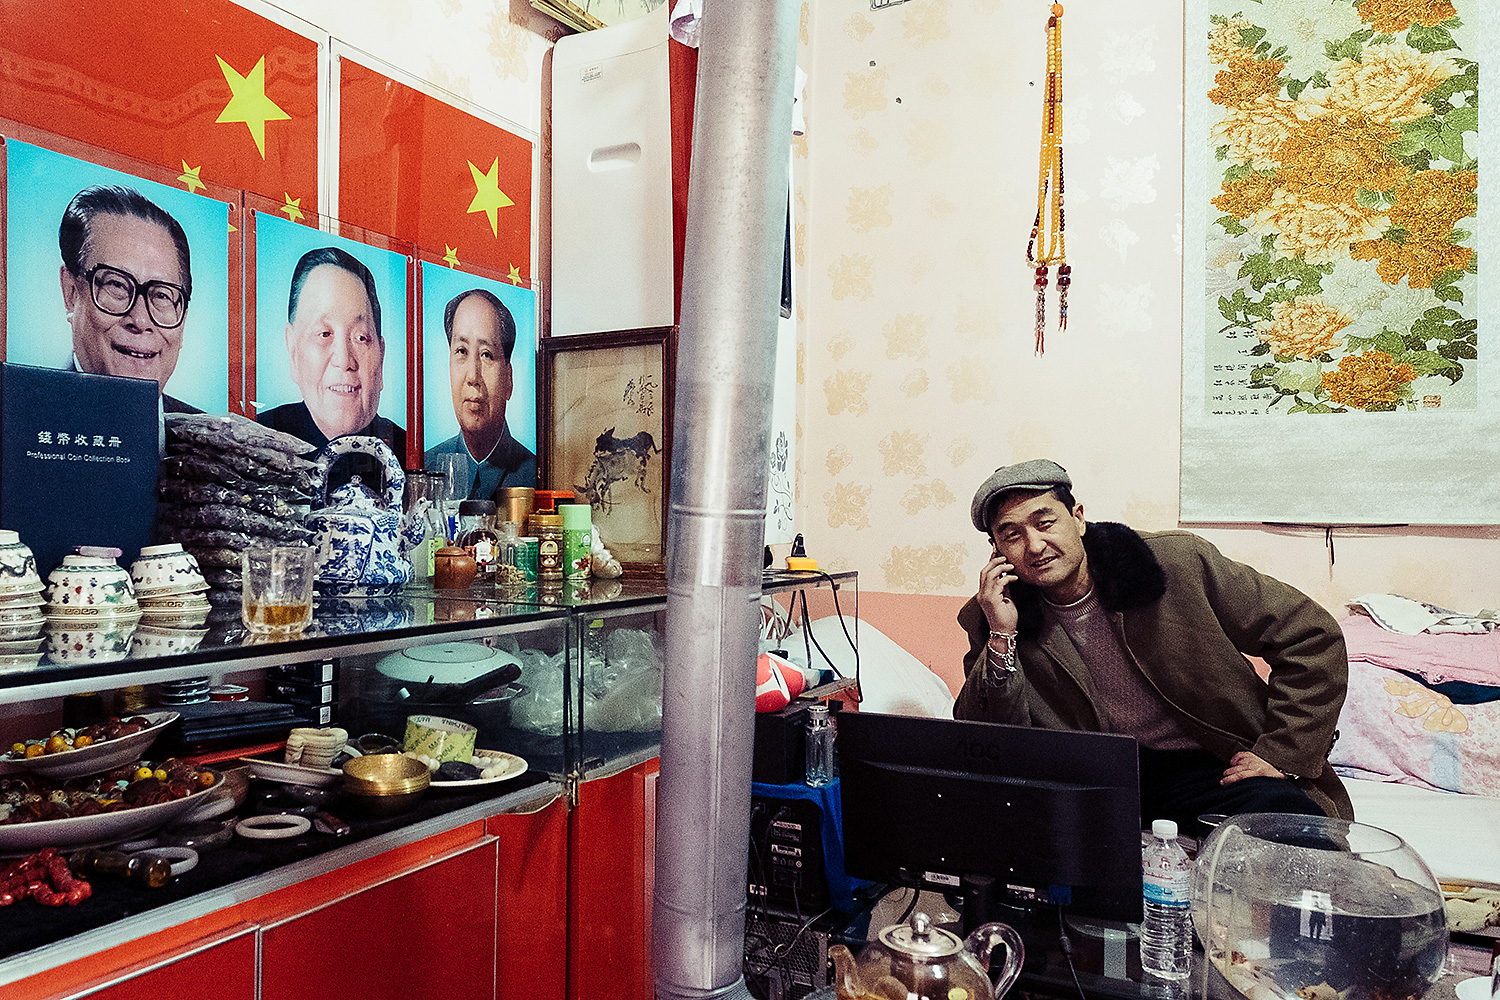 Thirty-six-year-old Mehmet, who only gave his first name, peddles antiques and jade on a Kashgar street popular with tourists. He says he is a fan of former Chinese leaders Mao Zedong and Deng Xiaoping, and thinks that Kashgar could benefit from its own 'Reform and Opening Up'—a policy Deng instituted to liberalize China's economy.